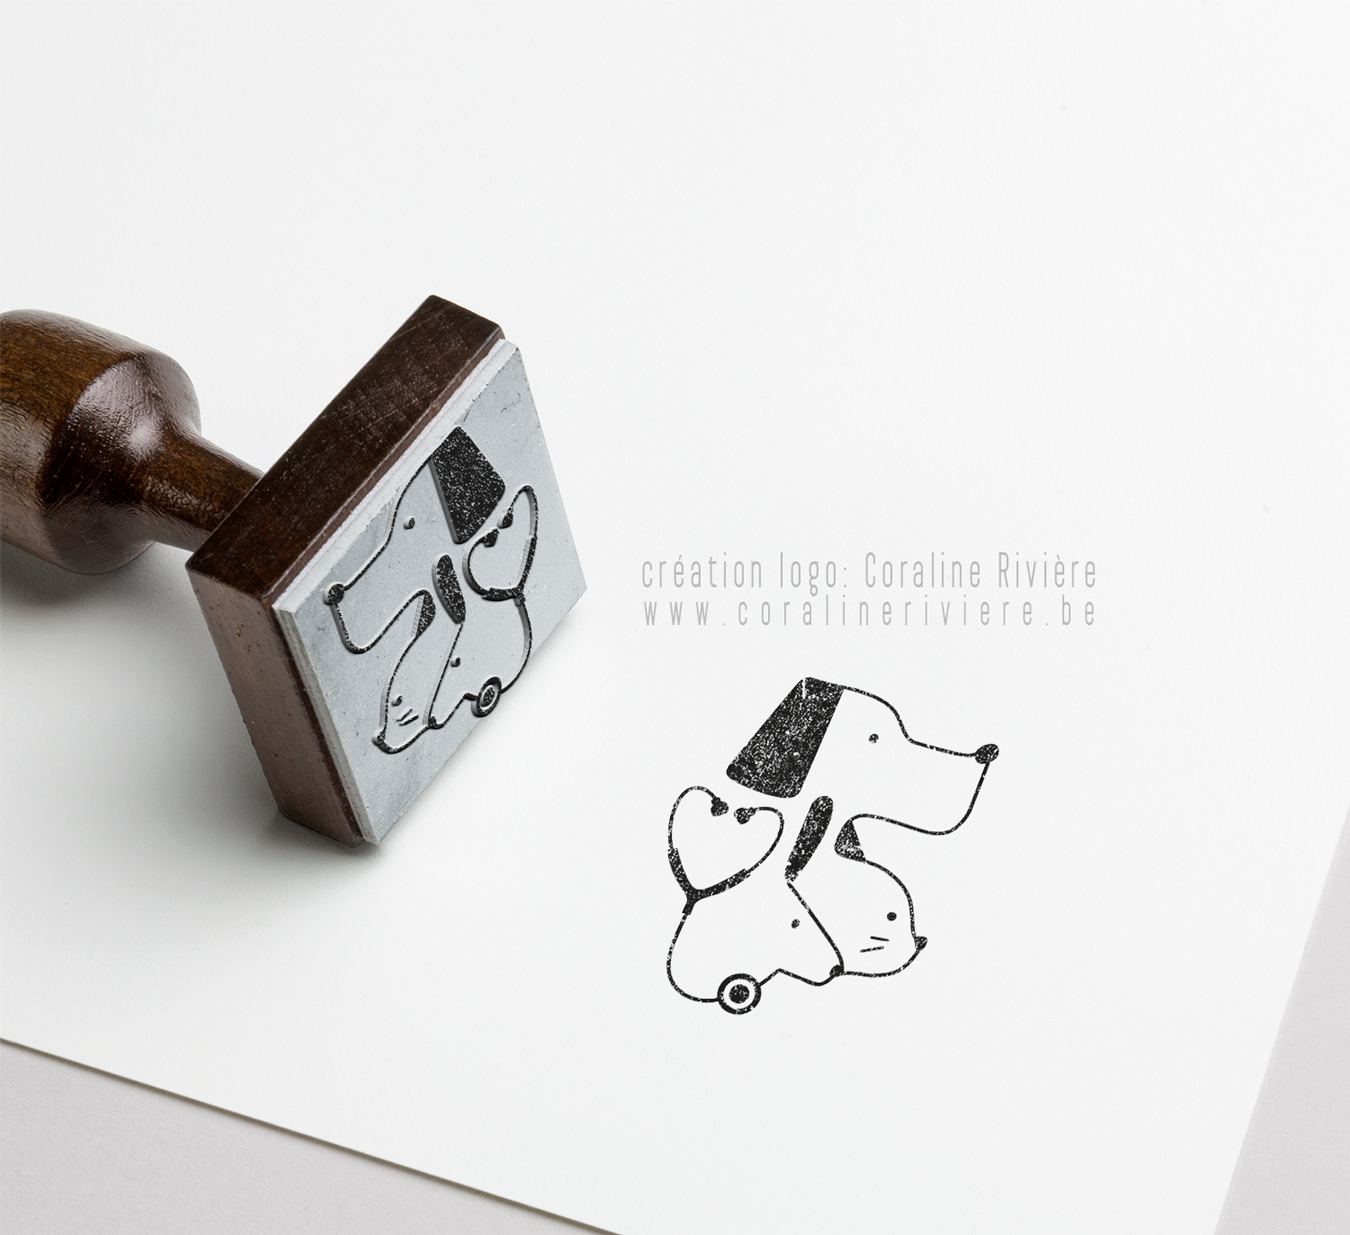 tampon logo veterinaire chien chat lapin stetoscope